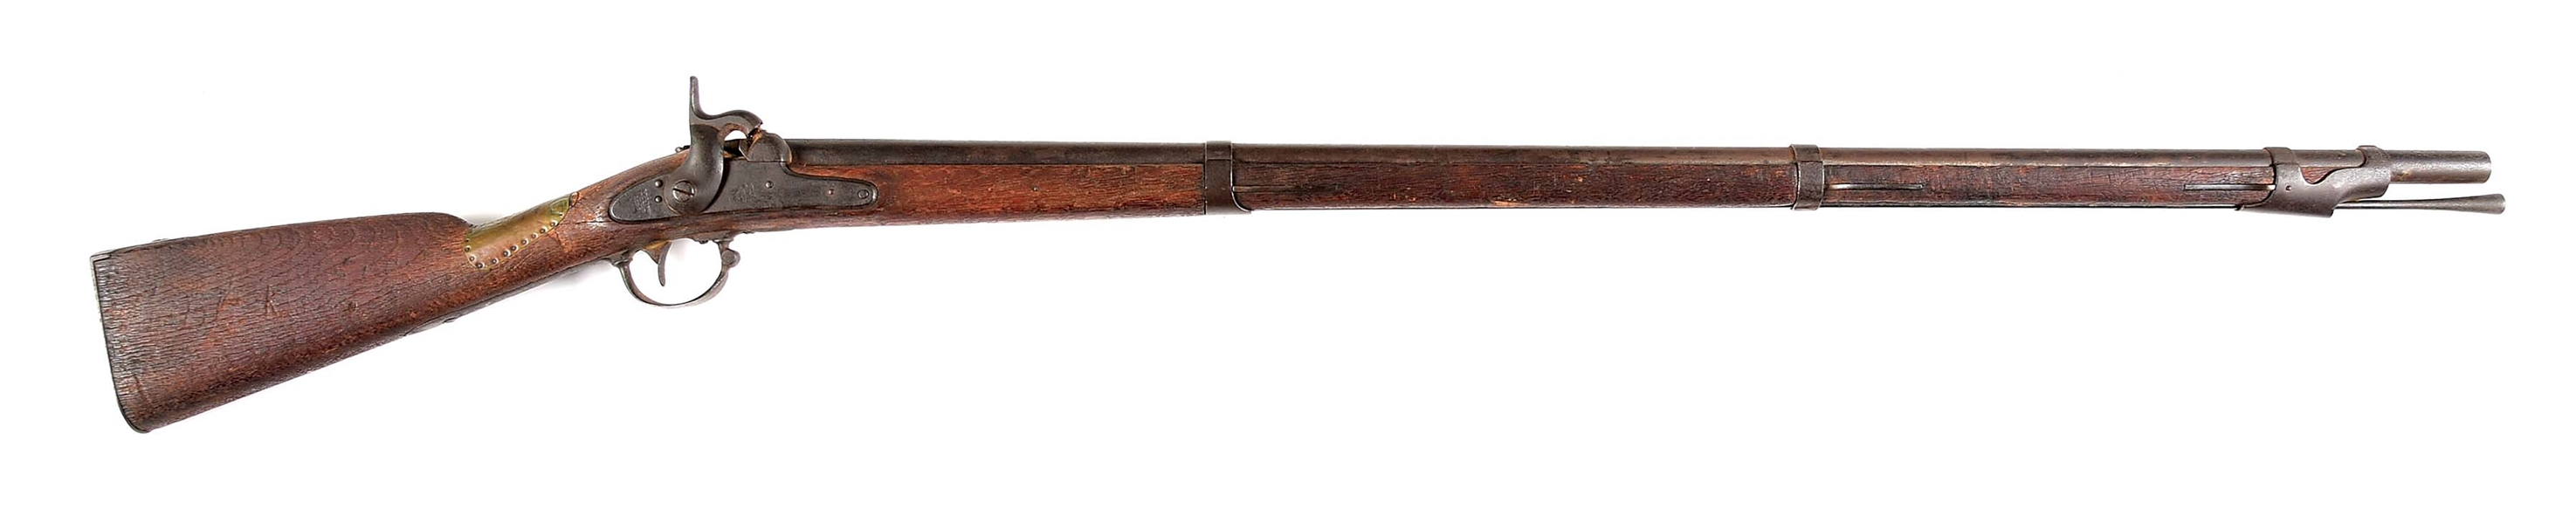 (A) MODEL 1842 SPRINGFIELD PERCUSSION MUSKET FROM BATTLE OF SOUTH MOUNTAIN.